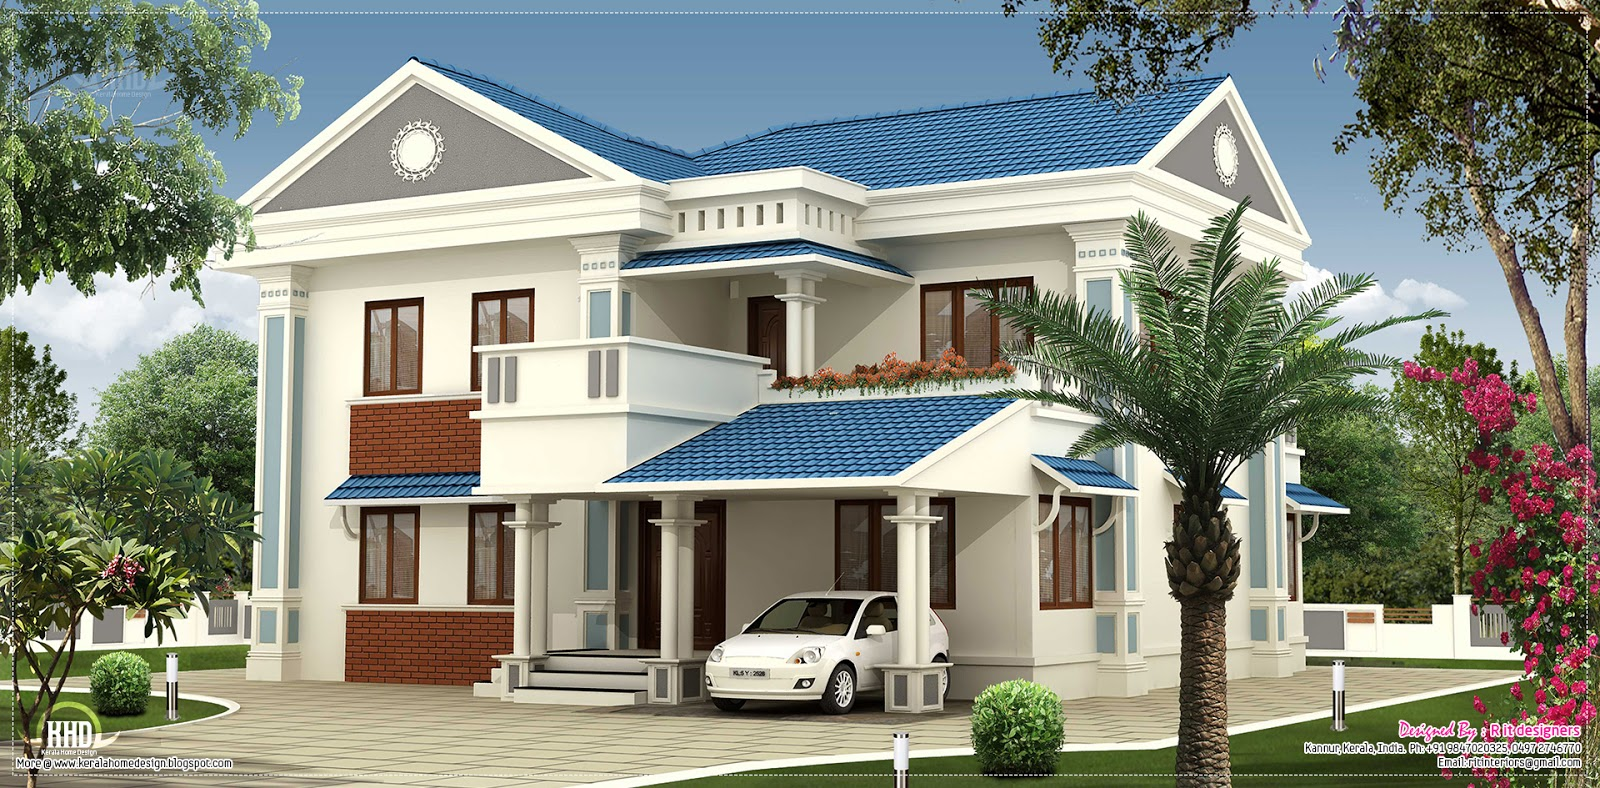 2000 beautiful villa elevation design kerala for Beautiful house design